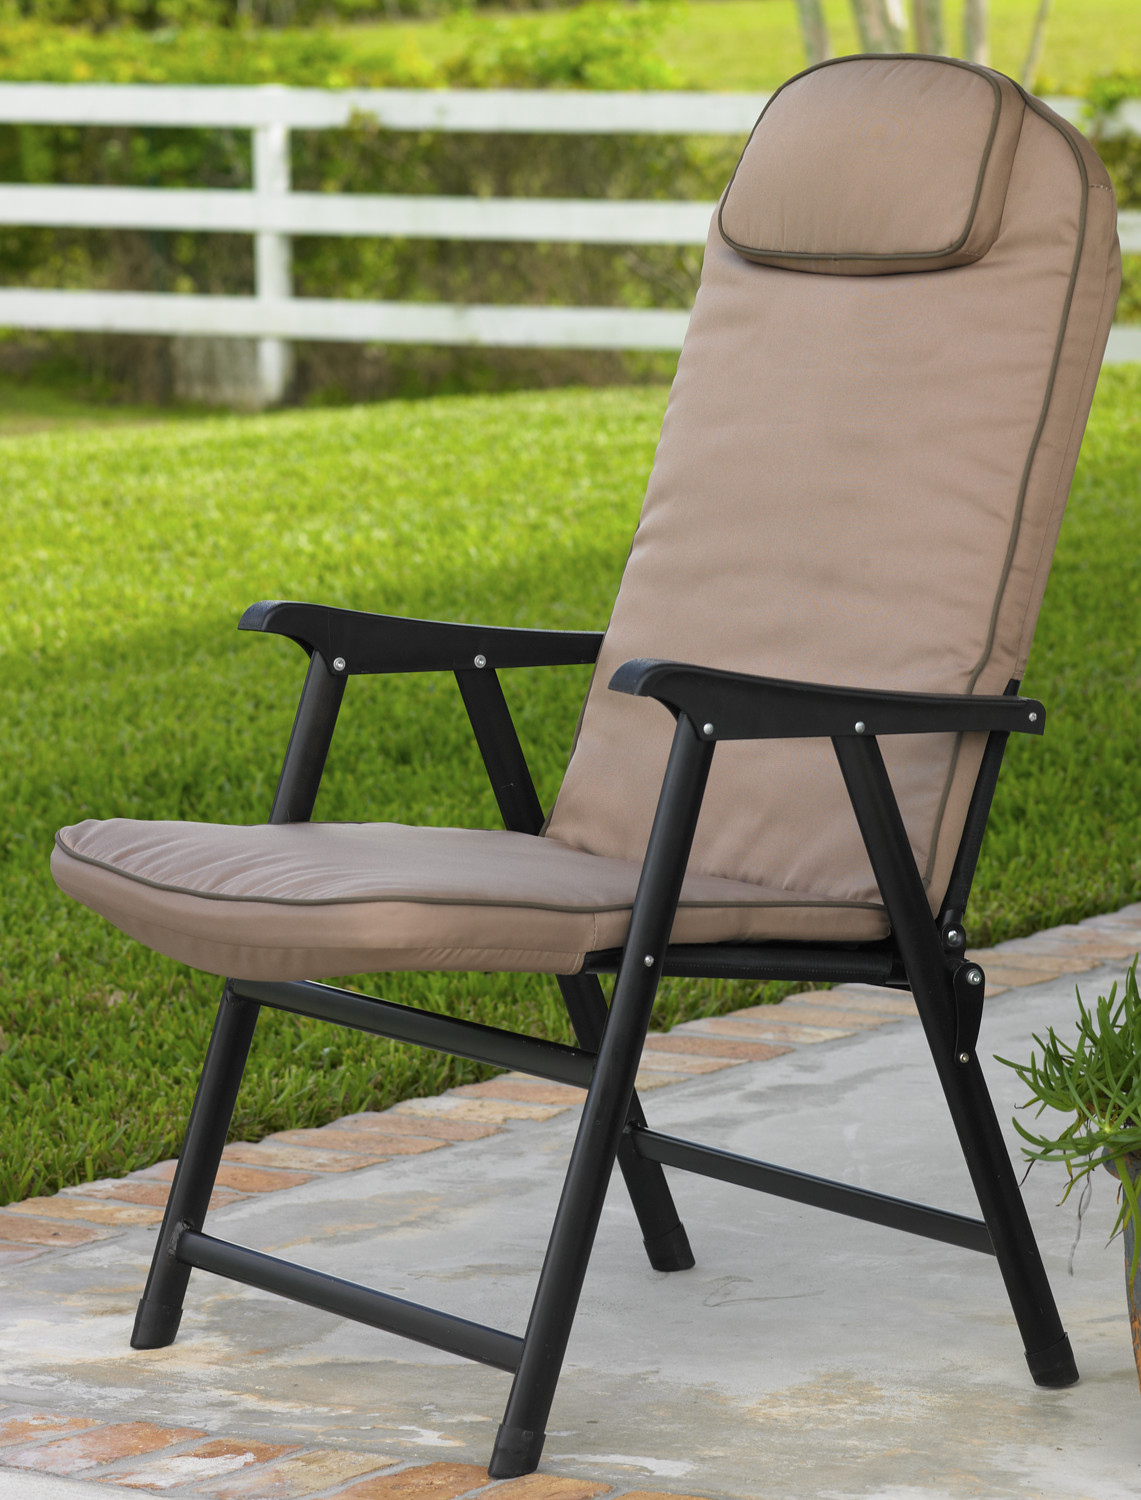 3 premium choices in heavy duty folding chairs